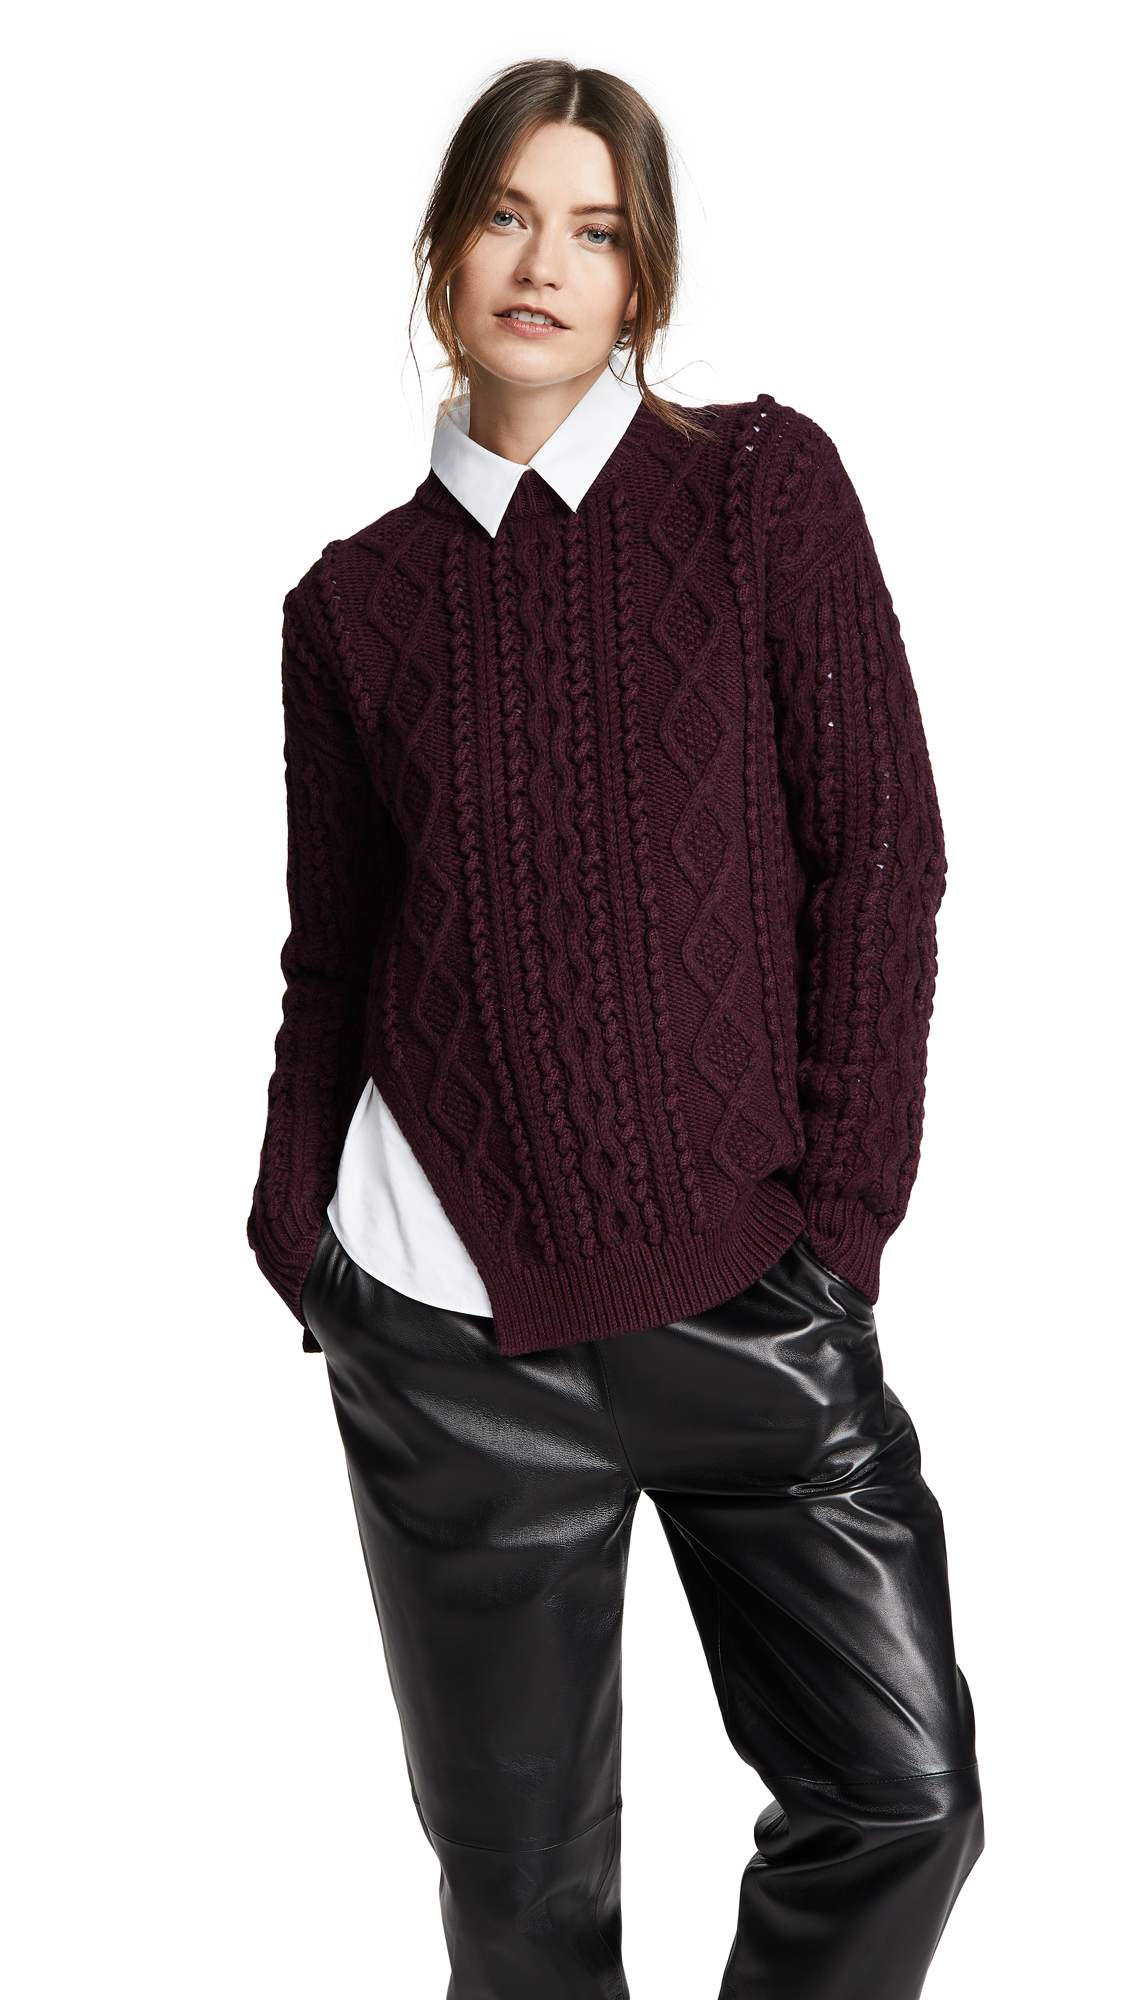 3.1 Phillip Lim Popcorn Cable Long Pullover - Wine